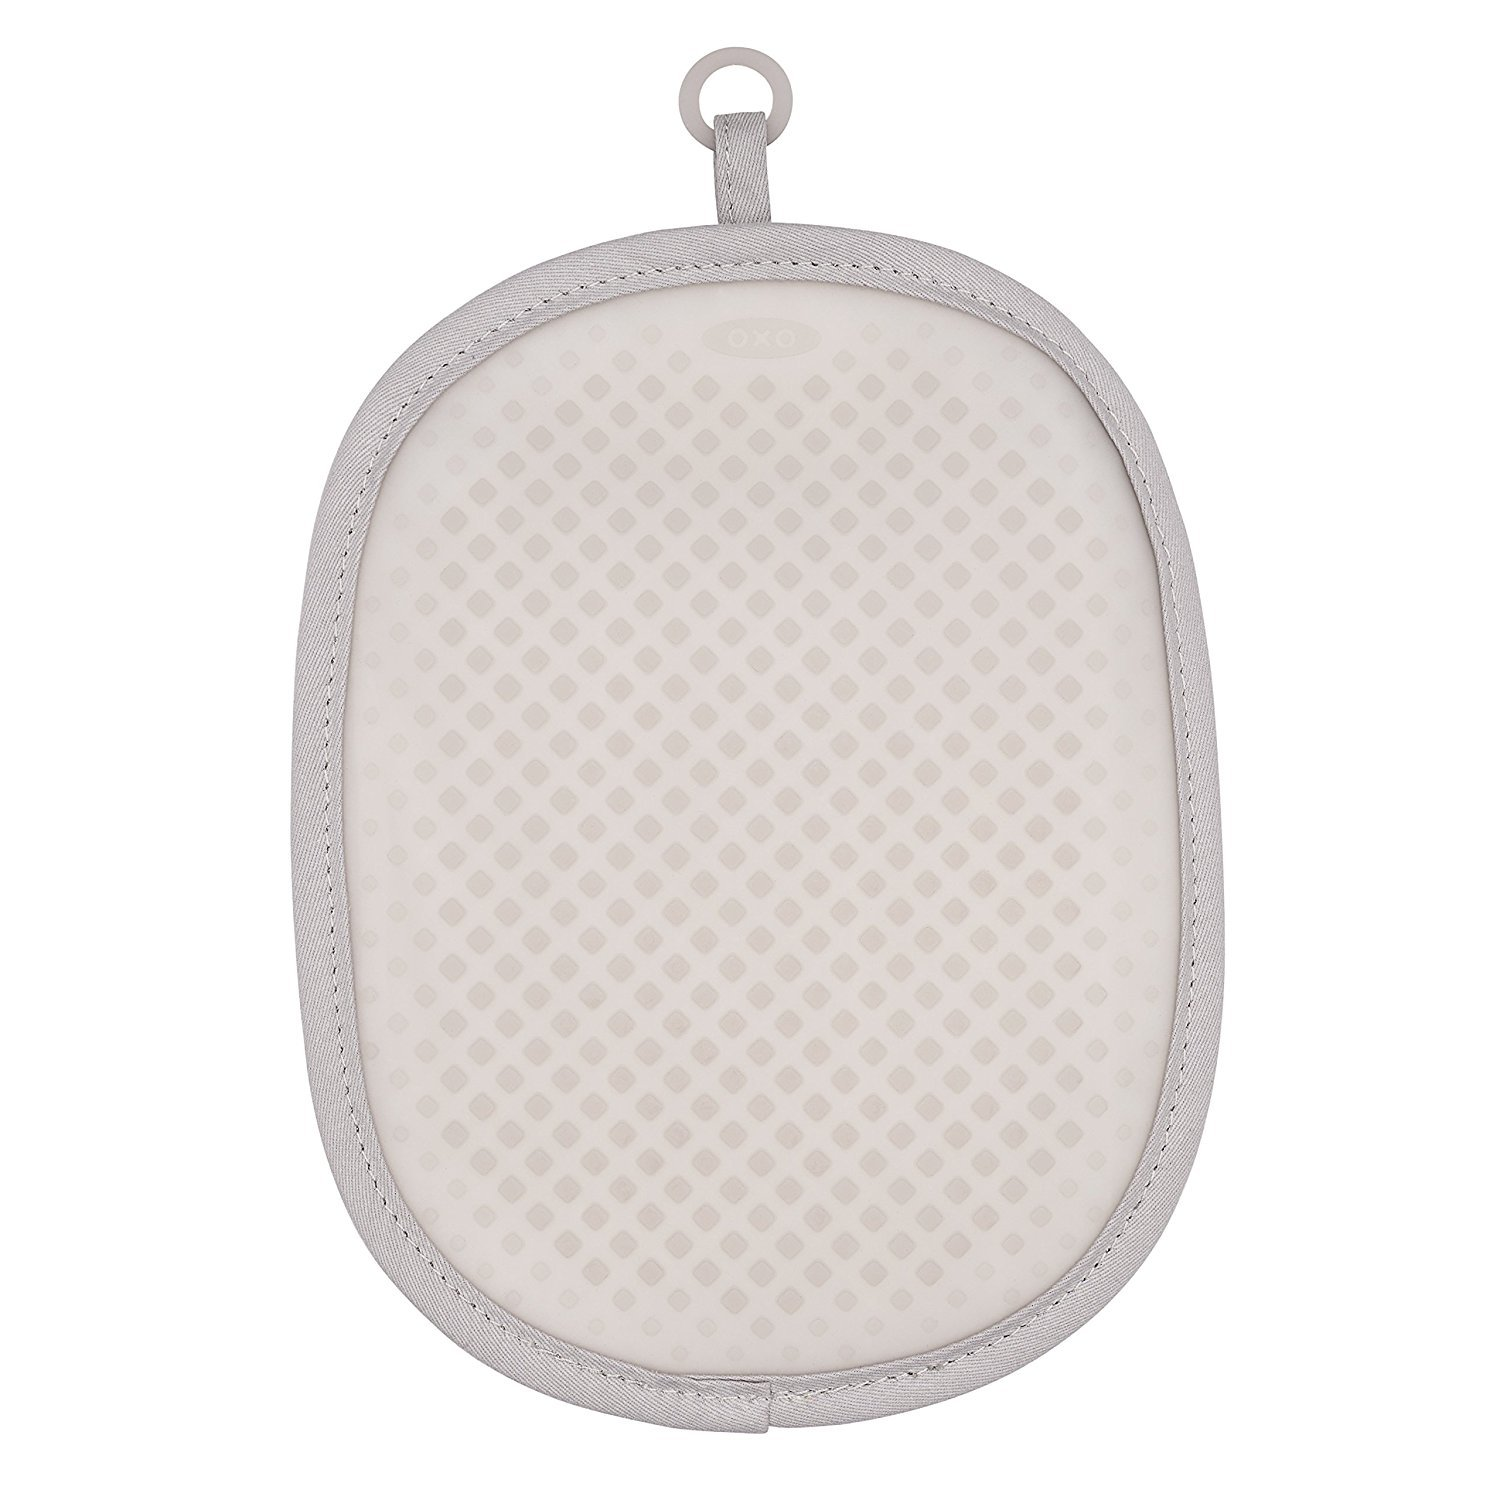 OXO Good Grips Silicone Pot Holder - Gray